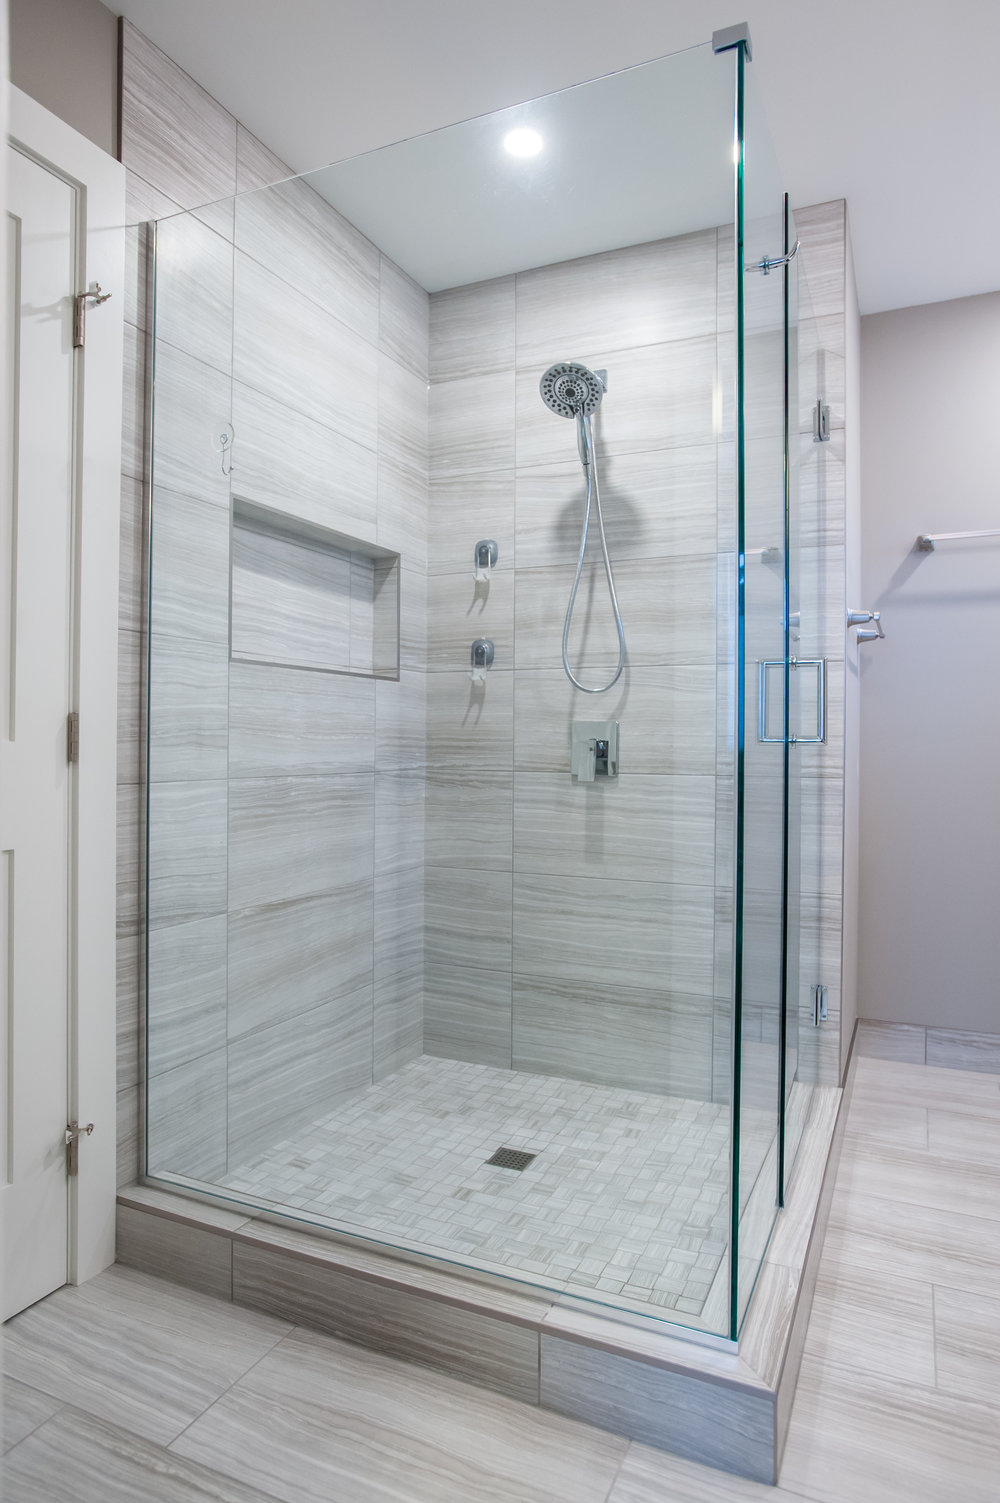 Shower_after_reno_modern_2